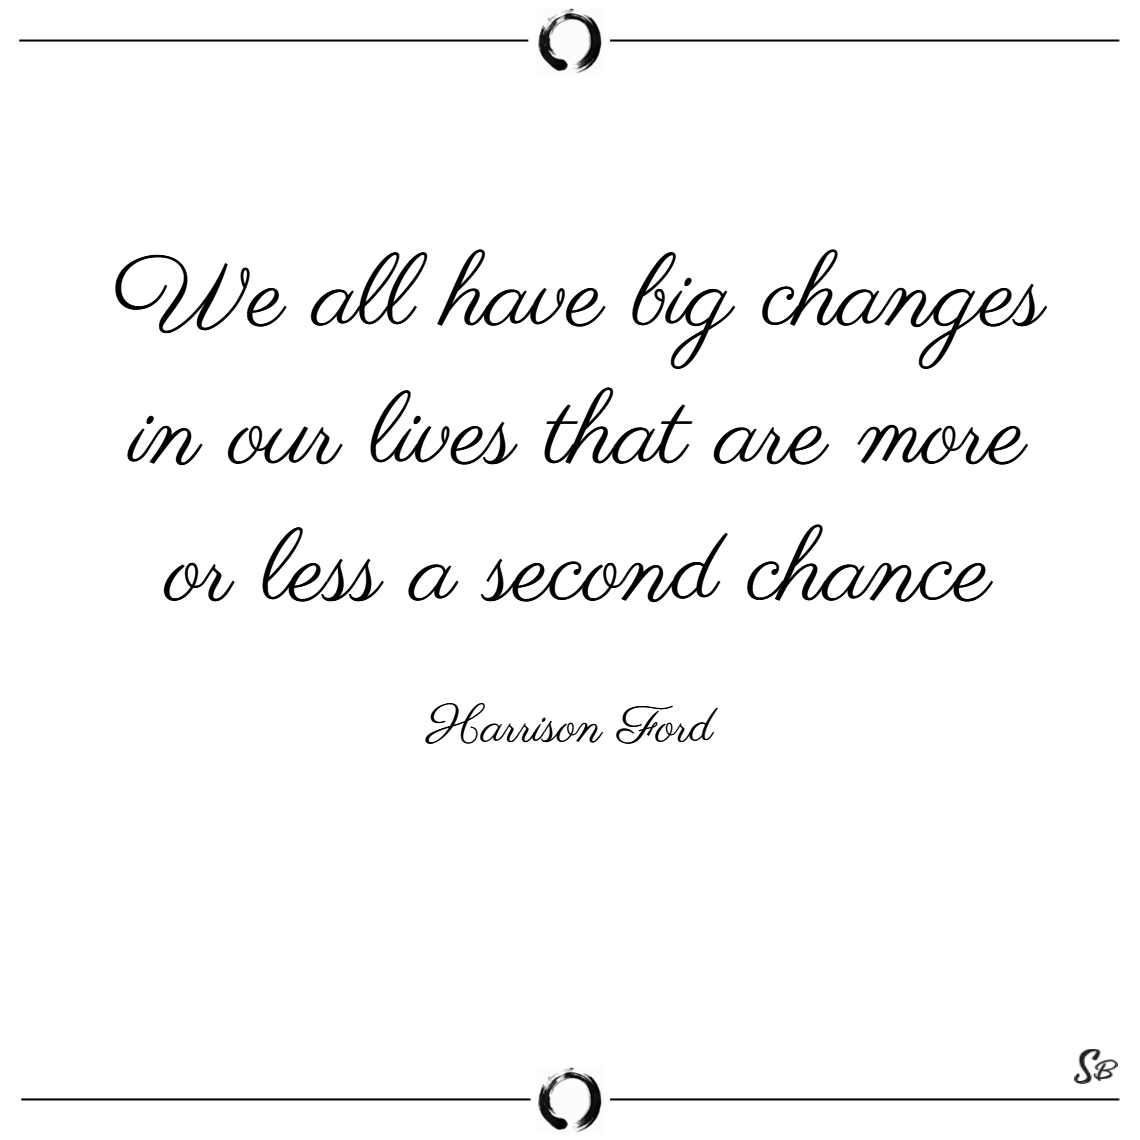 We all have big changes in our lives that are more or less a second chance. – harrison ford